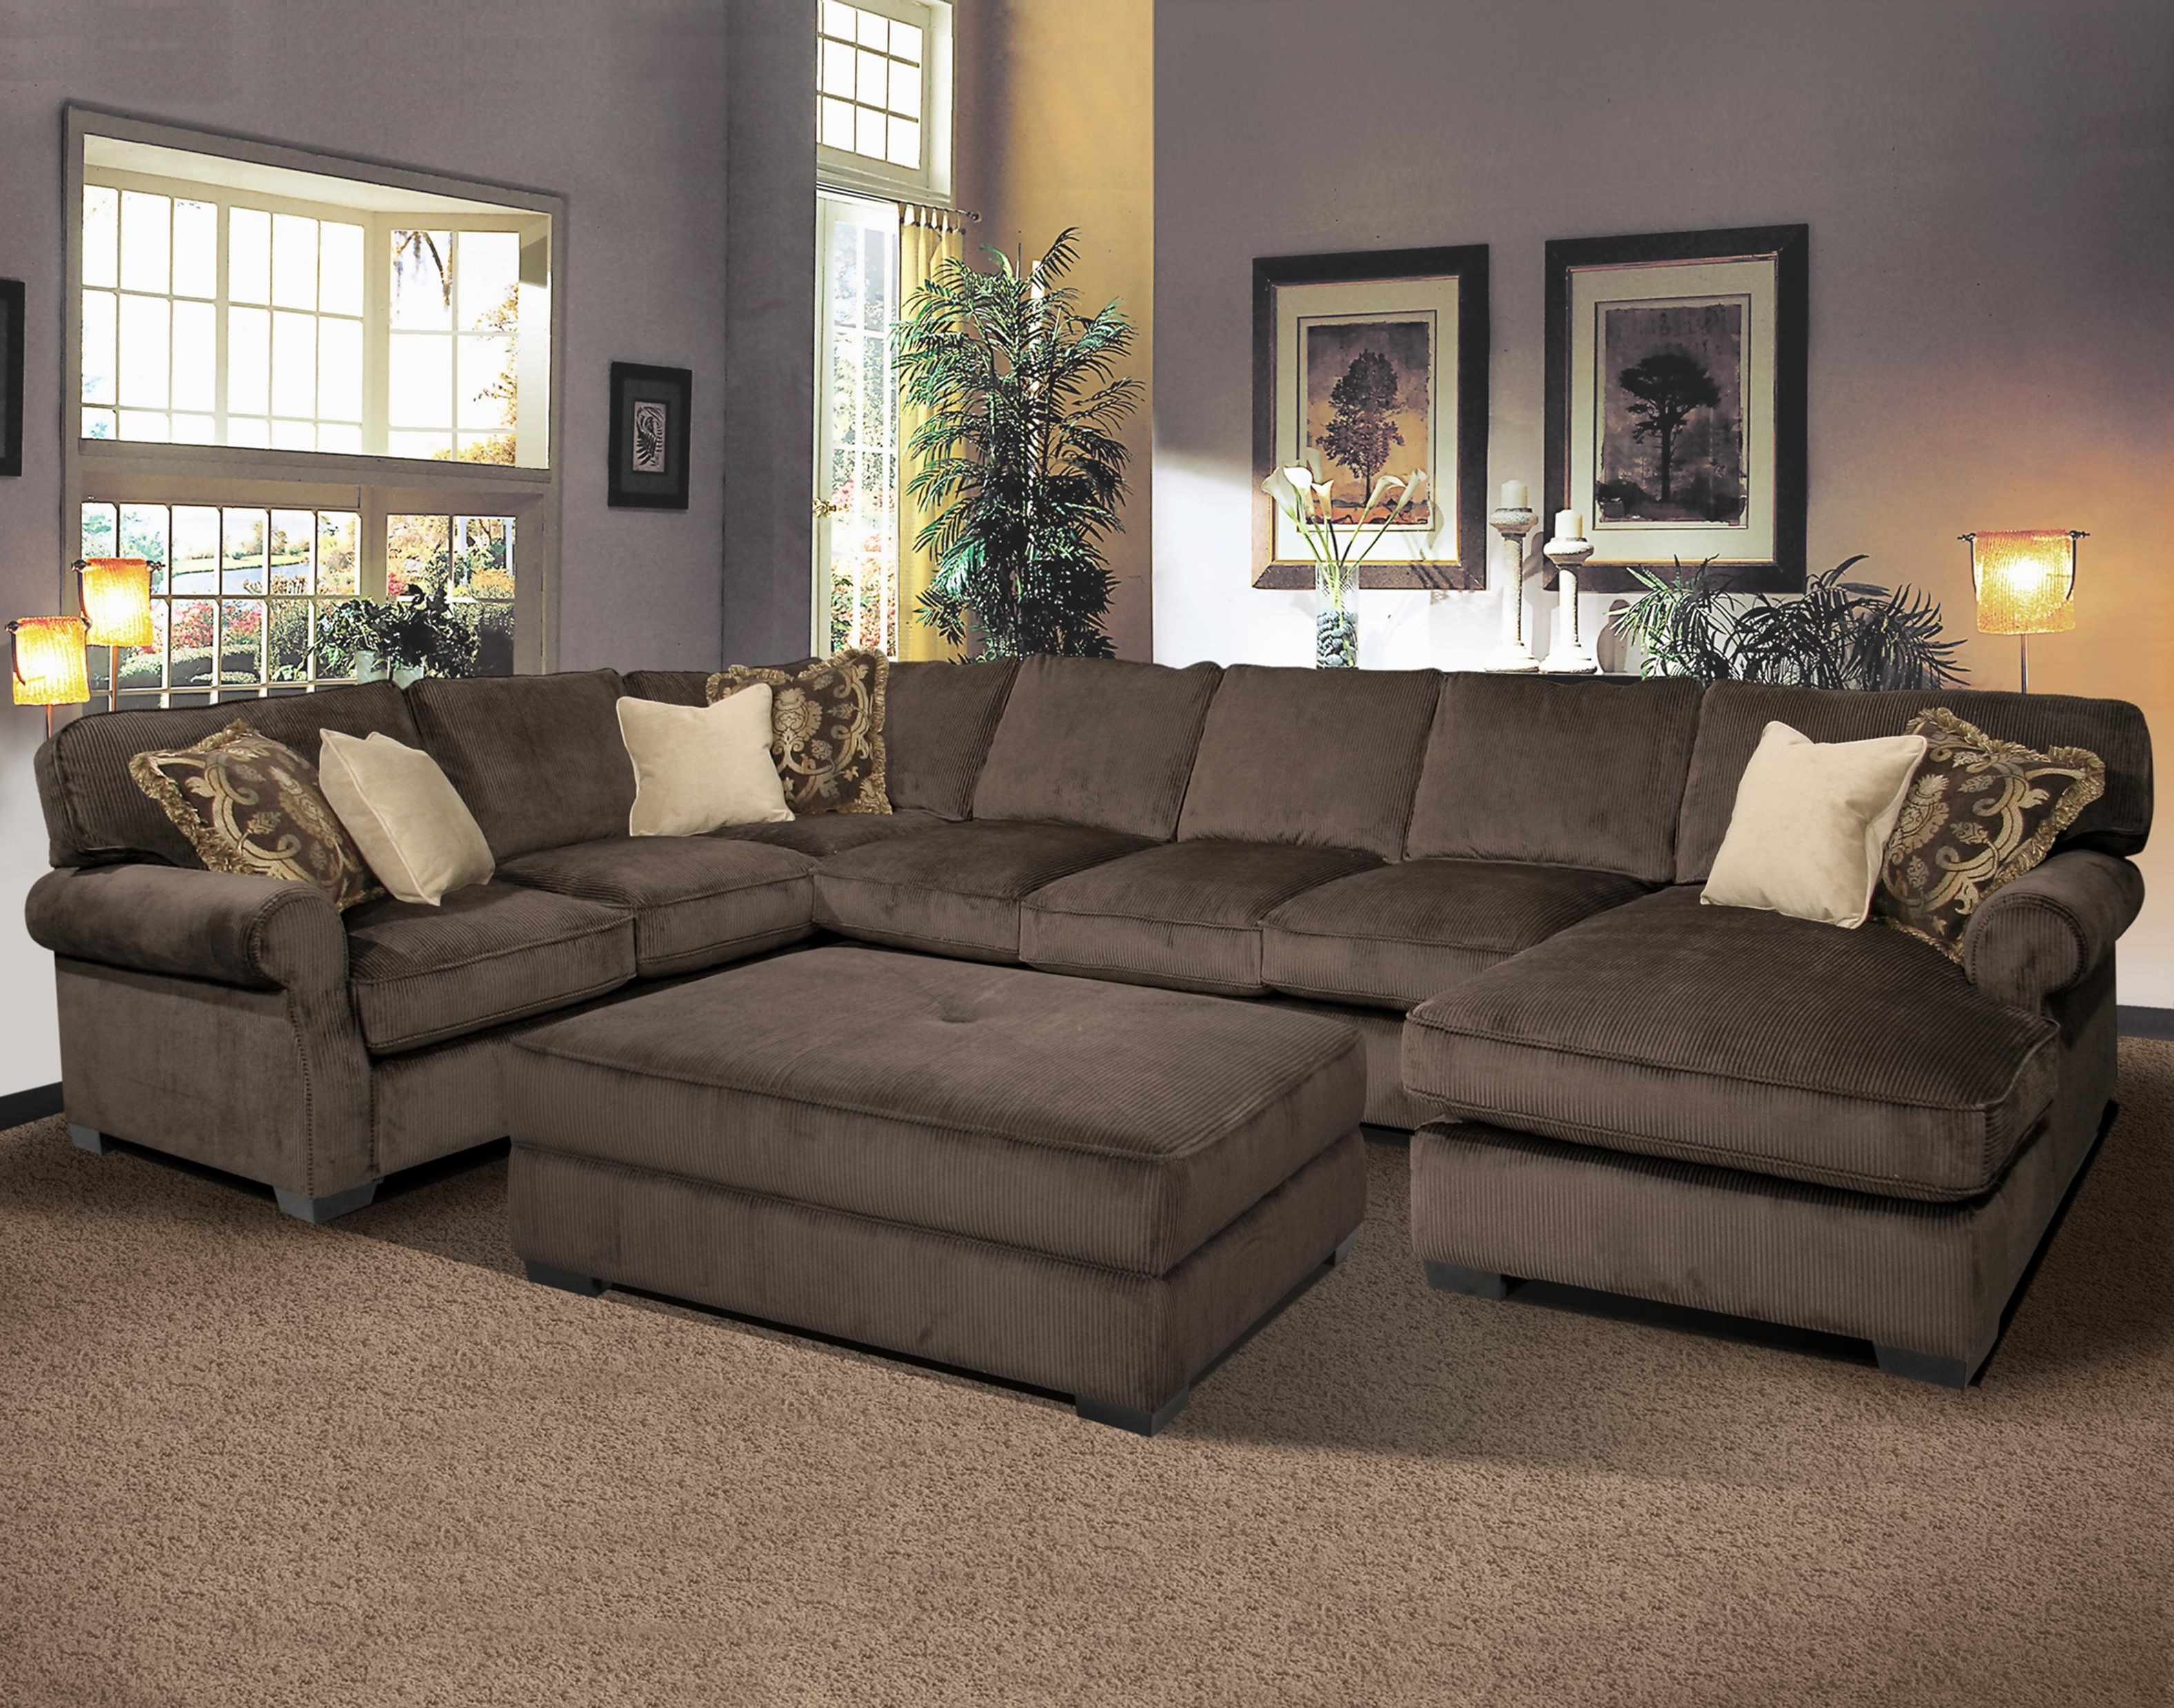 Well Known Quality Sectional Sofas Within Free Quality Sectional Sofas # (View 20 of 20)